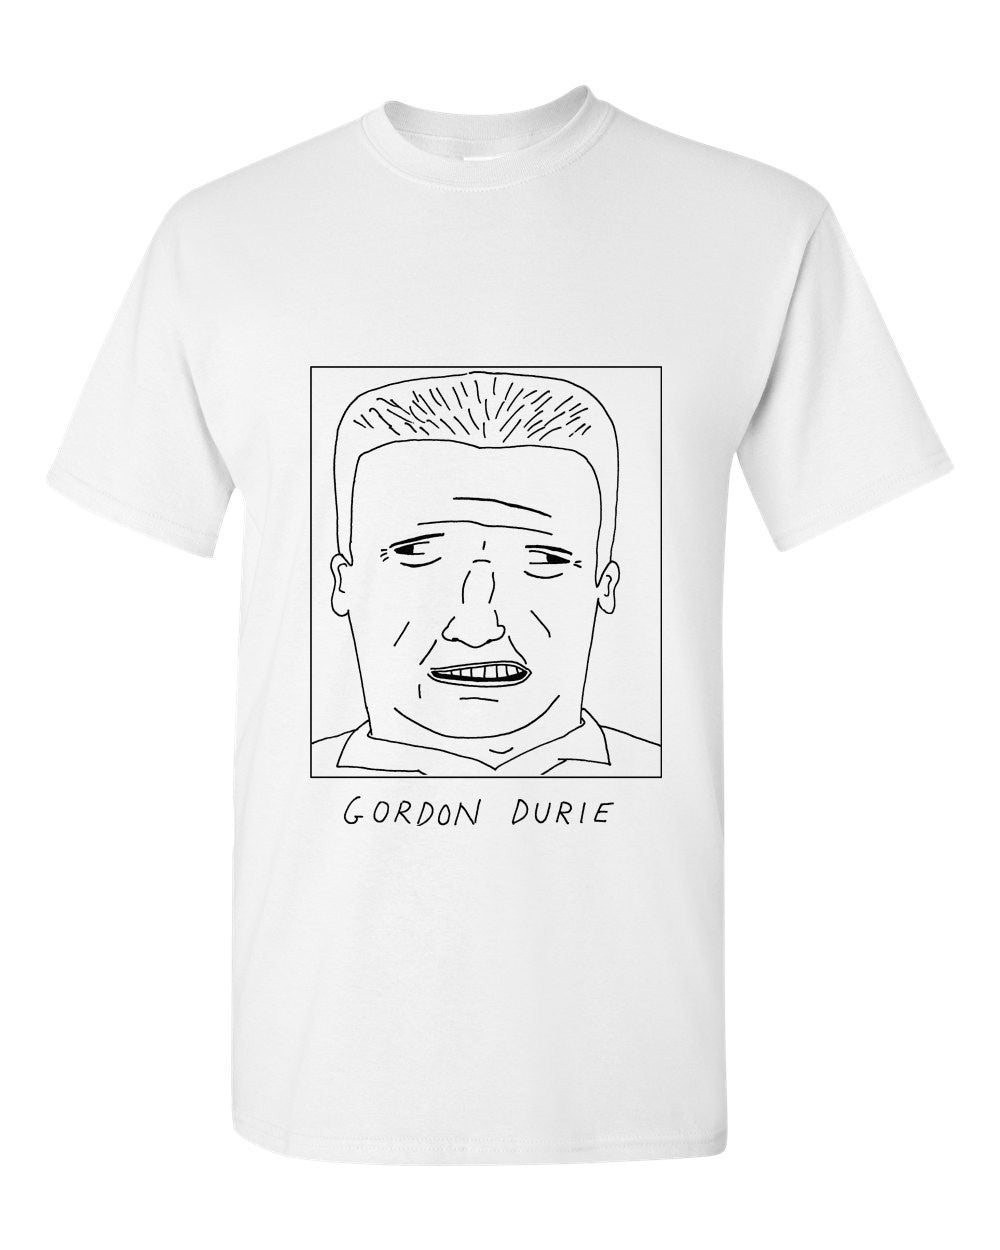 Badly Drawn Gordon Durie T-shirt - 1994 Tottenham Hotspur